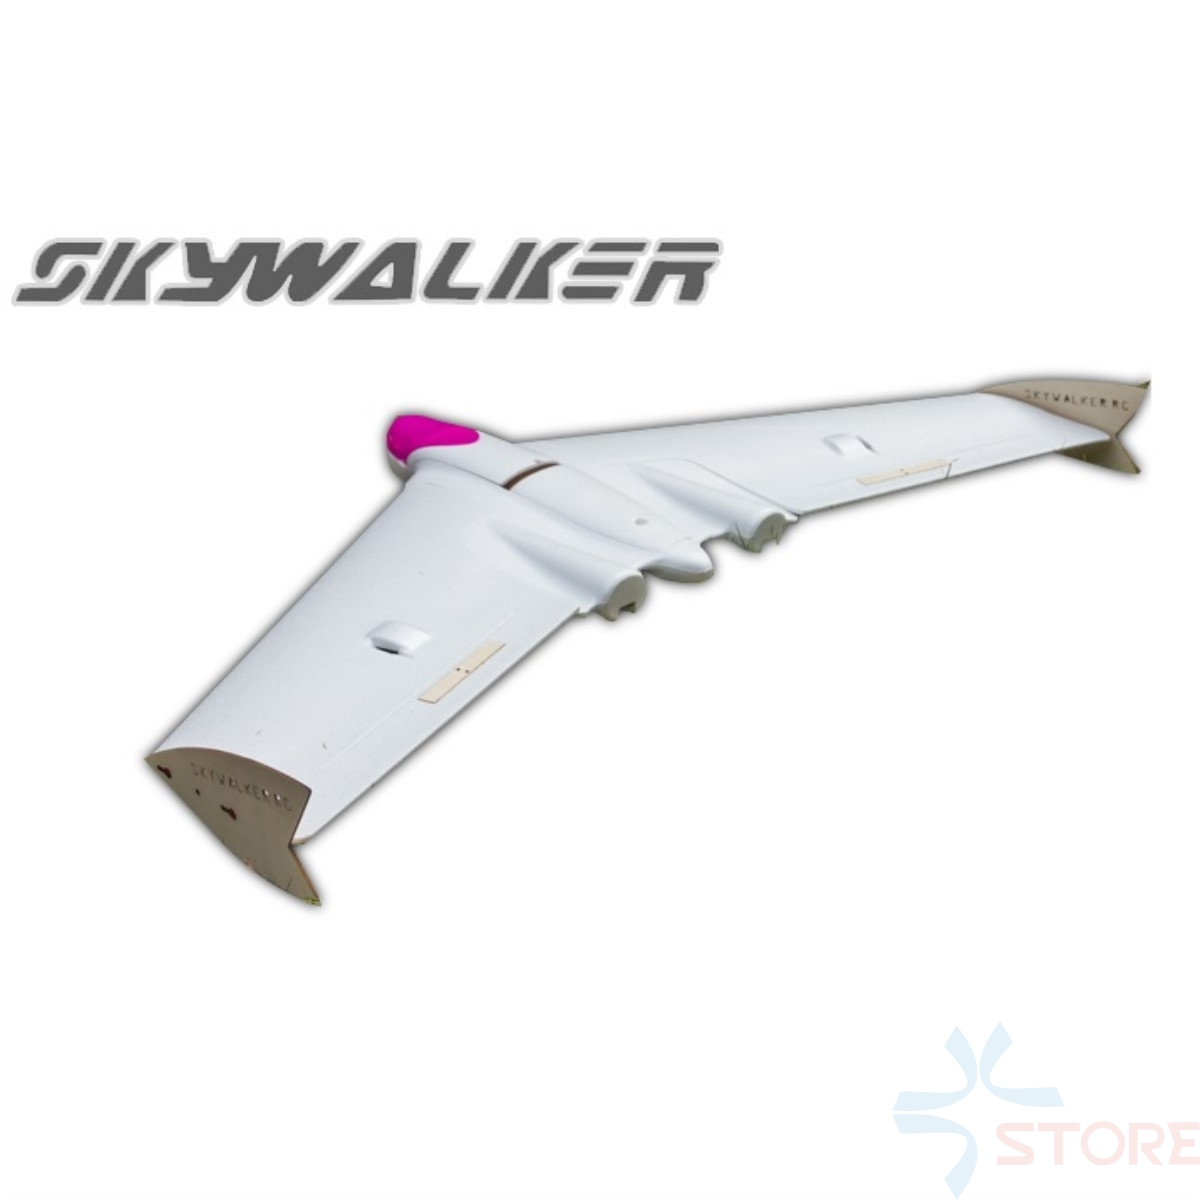 Skywalker SMART 996mm Wingspan EPO version Flying Wing For FPV Racing or Long Range Flying RC Airplane Kit Frame diy ar wing 900mm drone fpv flying wing frame kit pnp version optional for rc airplane